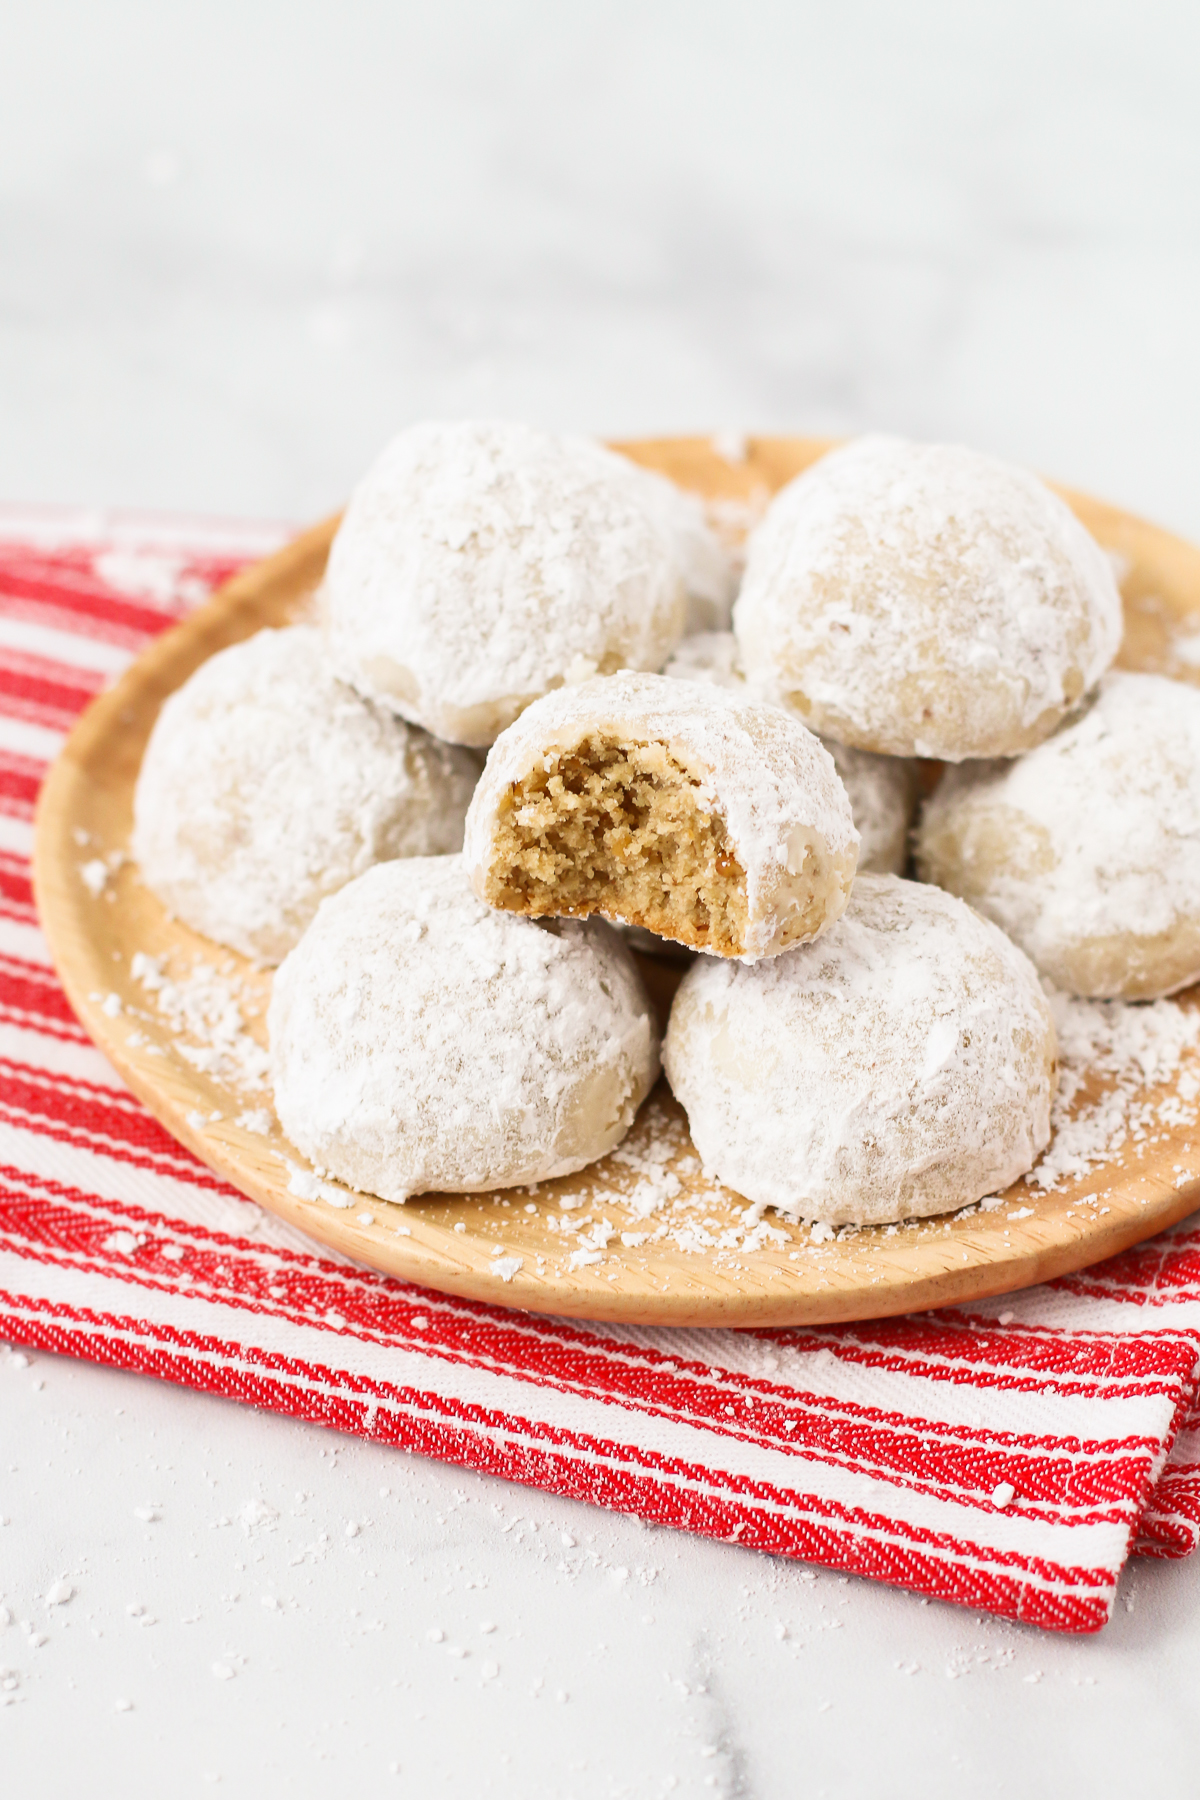 A simple holiday cookie that's made with toasted walnuts and rolled in powdered sugar. What's not to love about these gluten free vegan snowball cookies?